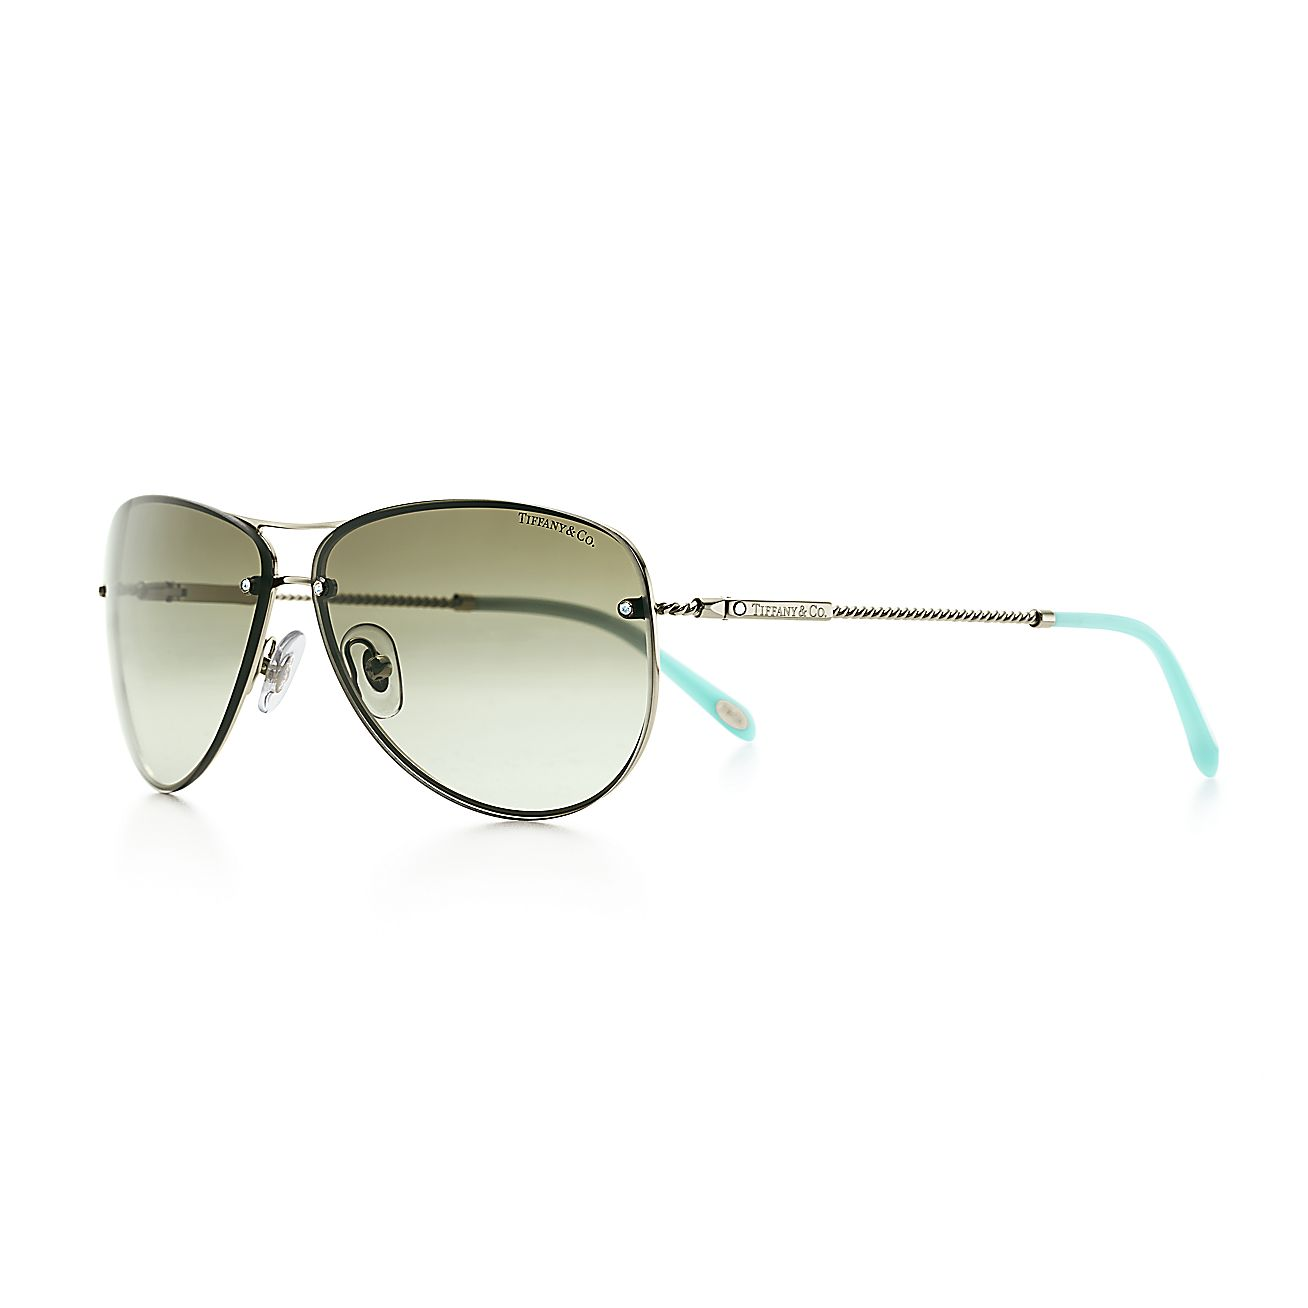 a63c3d1be813 Tiffany Twist Aviator Sunglasses In Tiffany Blue « Heritage Malta